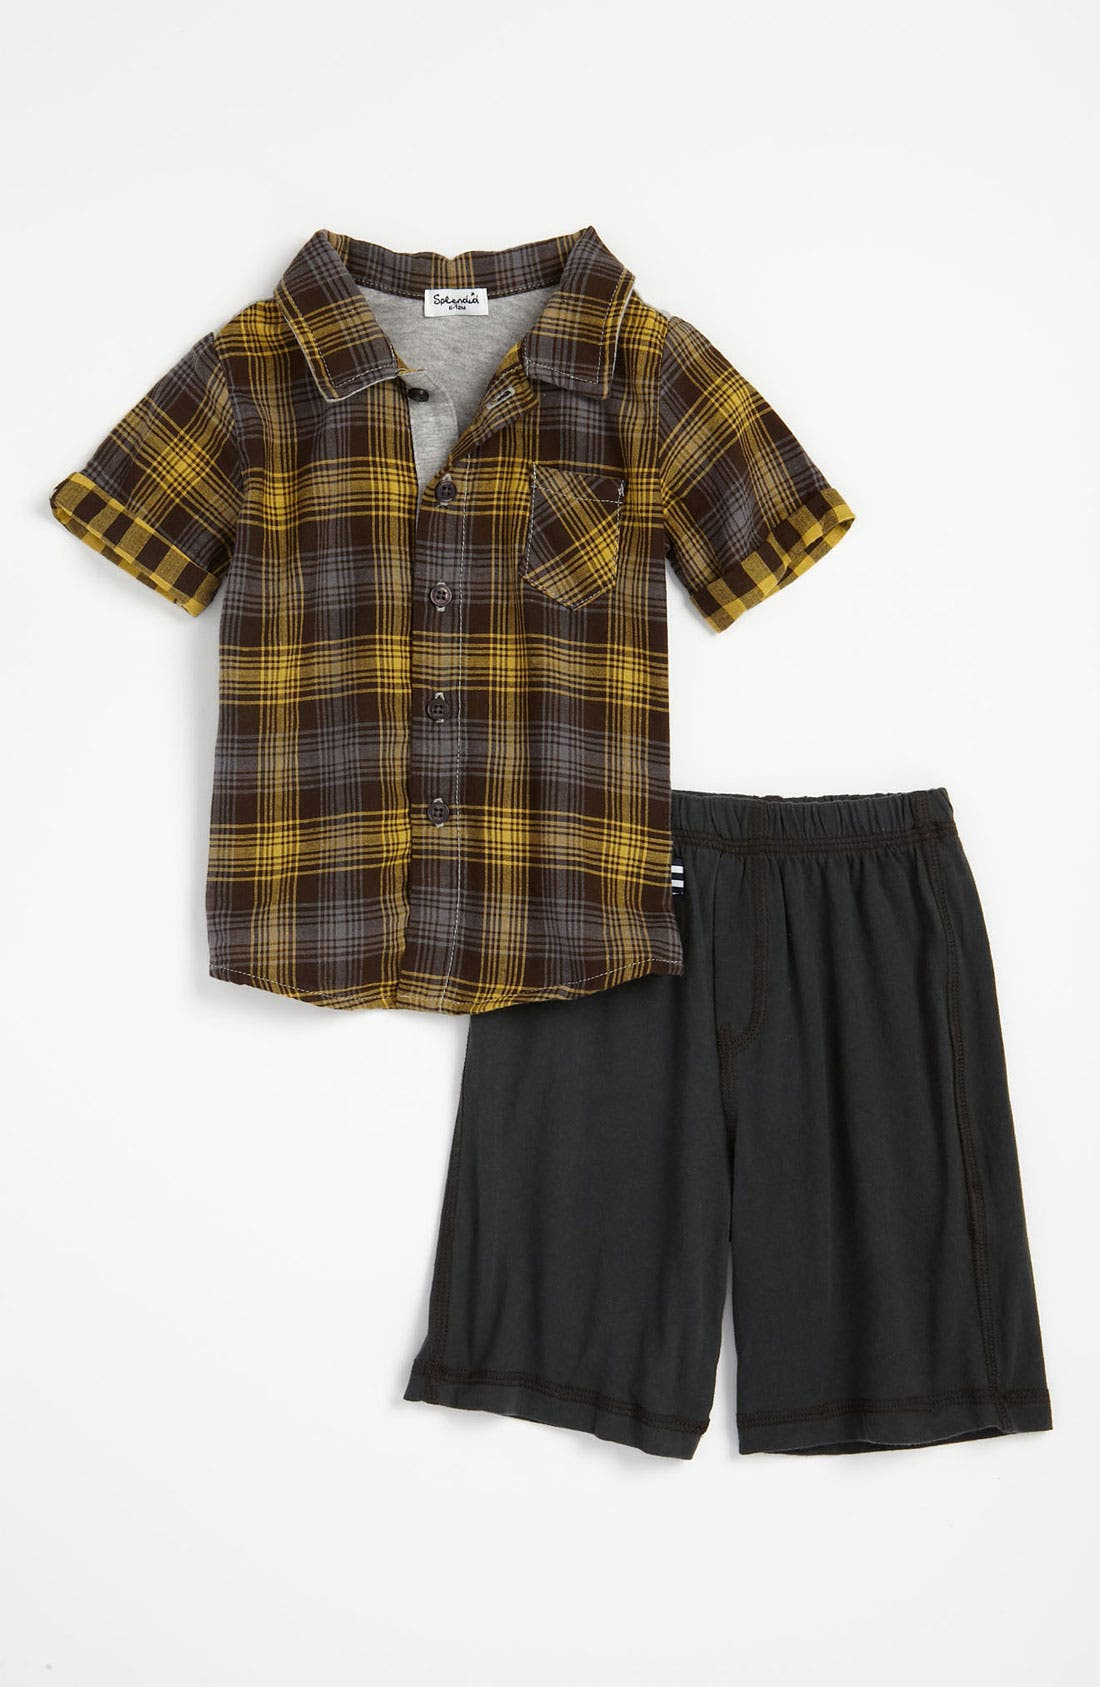 Main Image - Splendid 'Backyard' Plaid Shirt & Shorts (Infant)